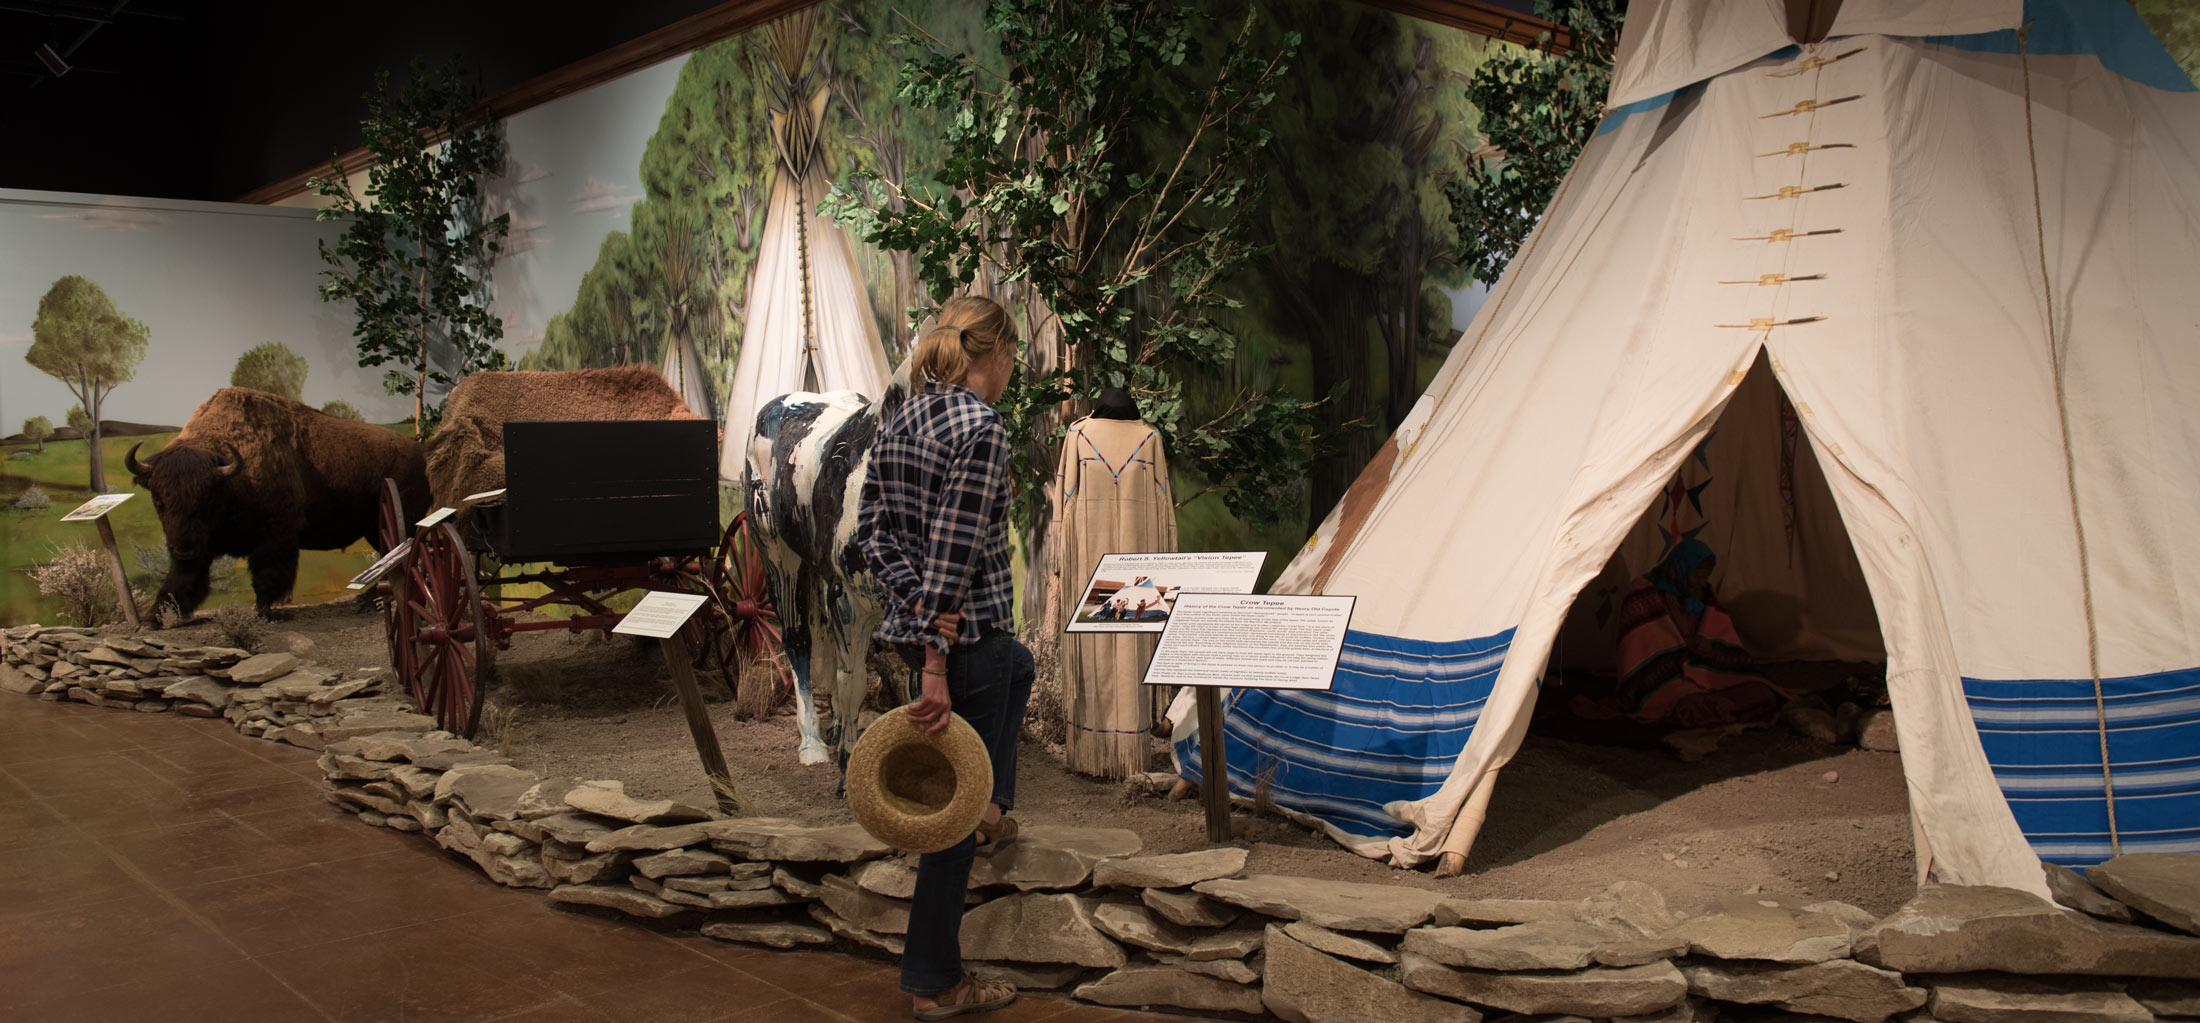 Big Horn County Historical Museum:  Epicenter of Western American History